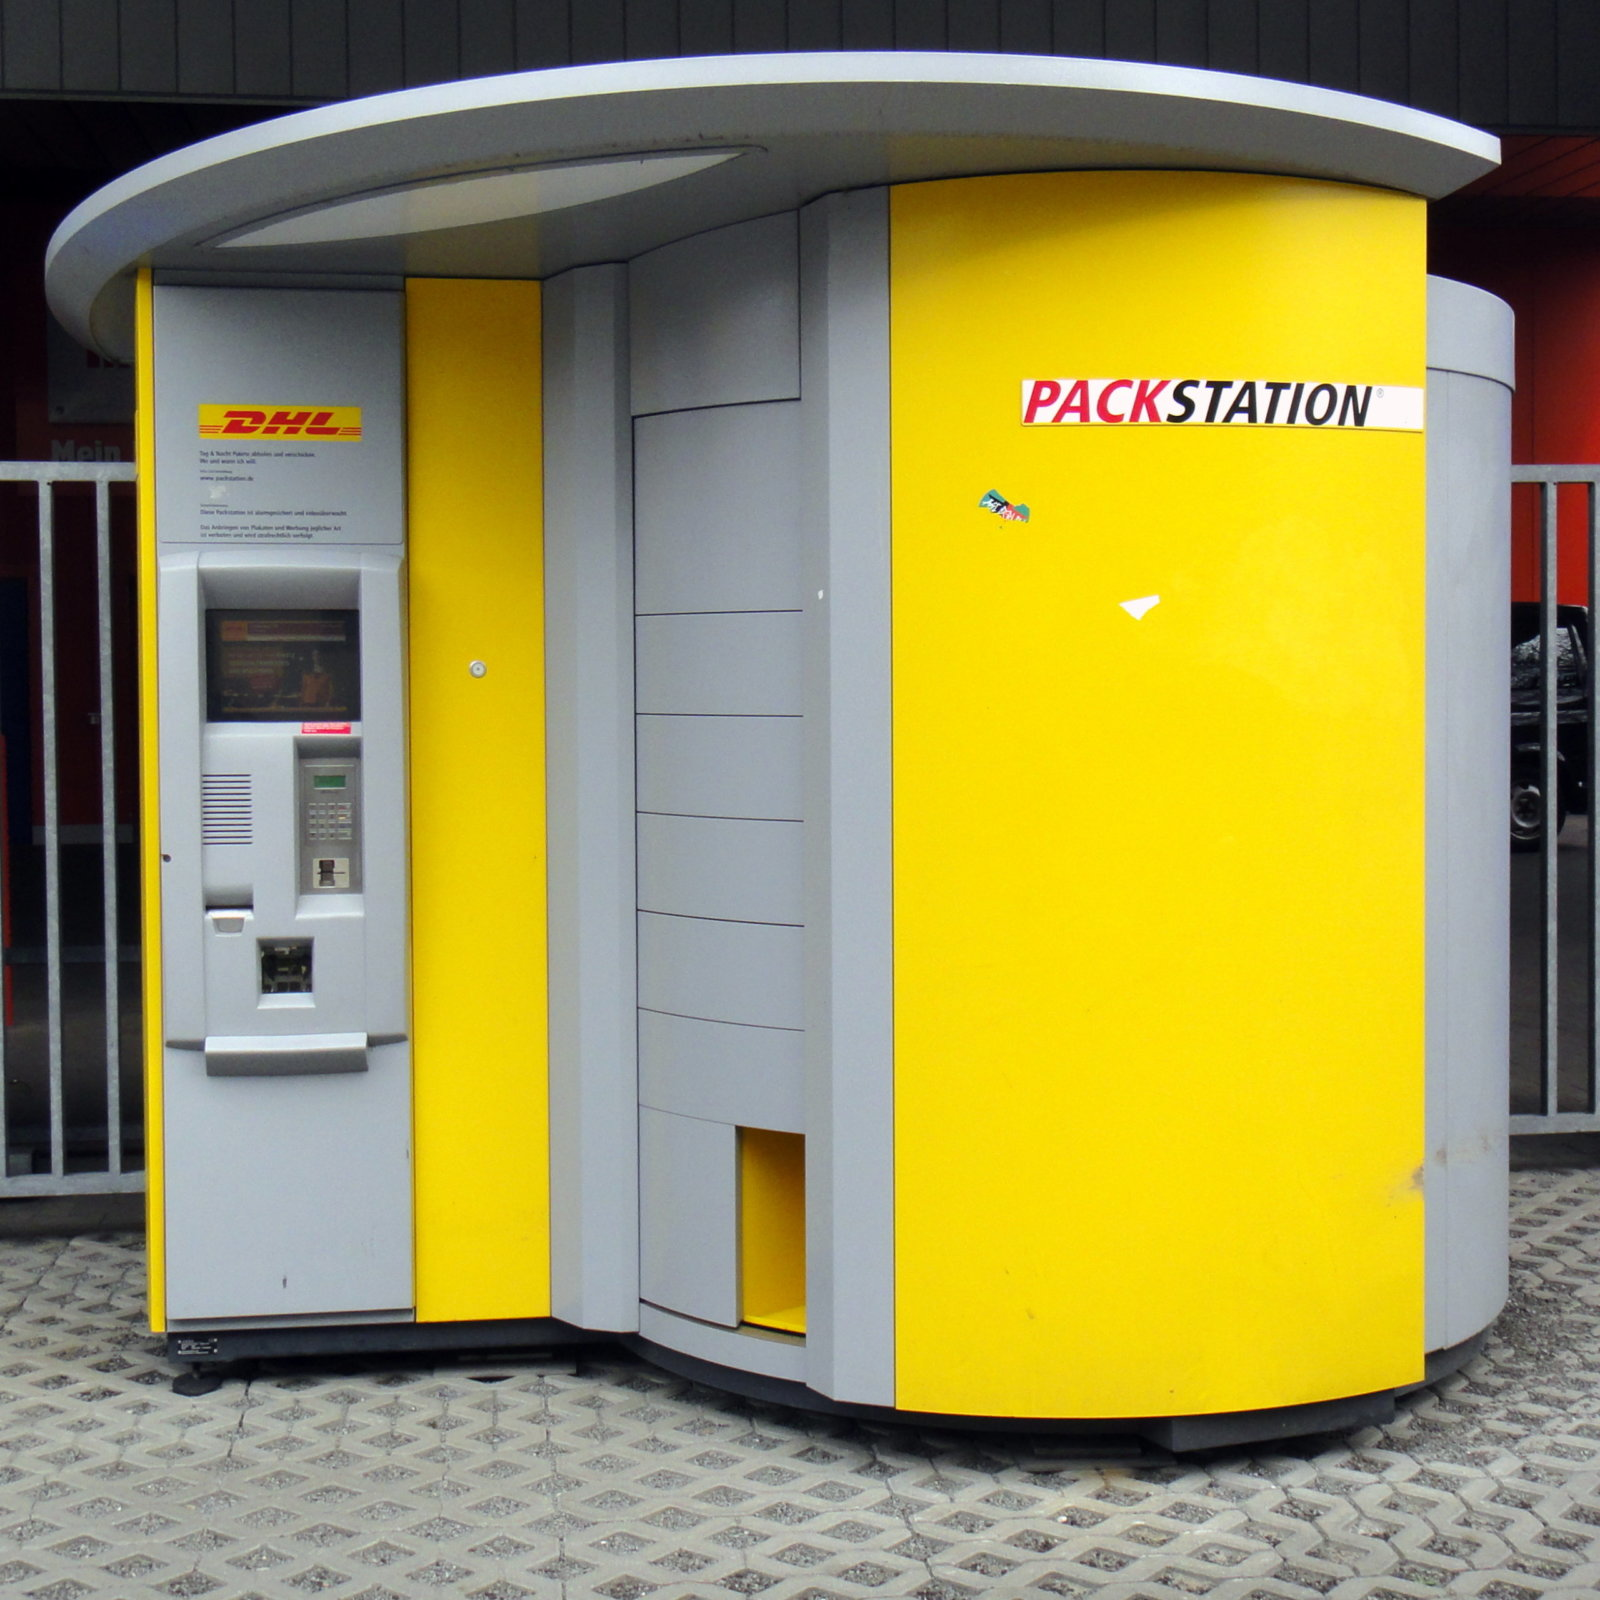 Packstations